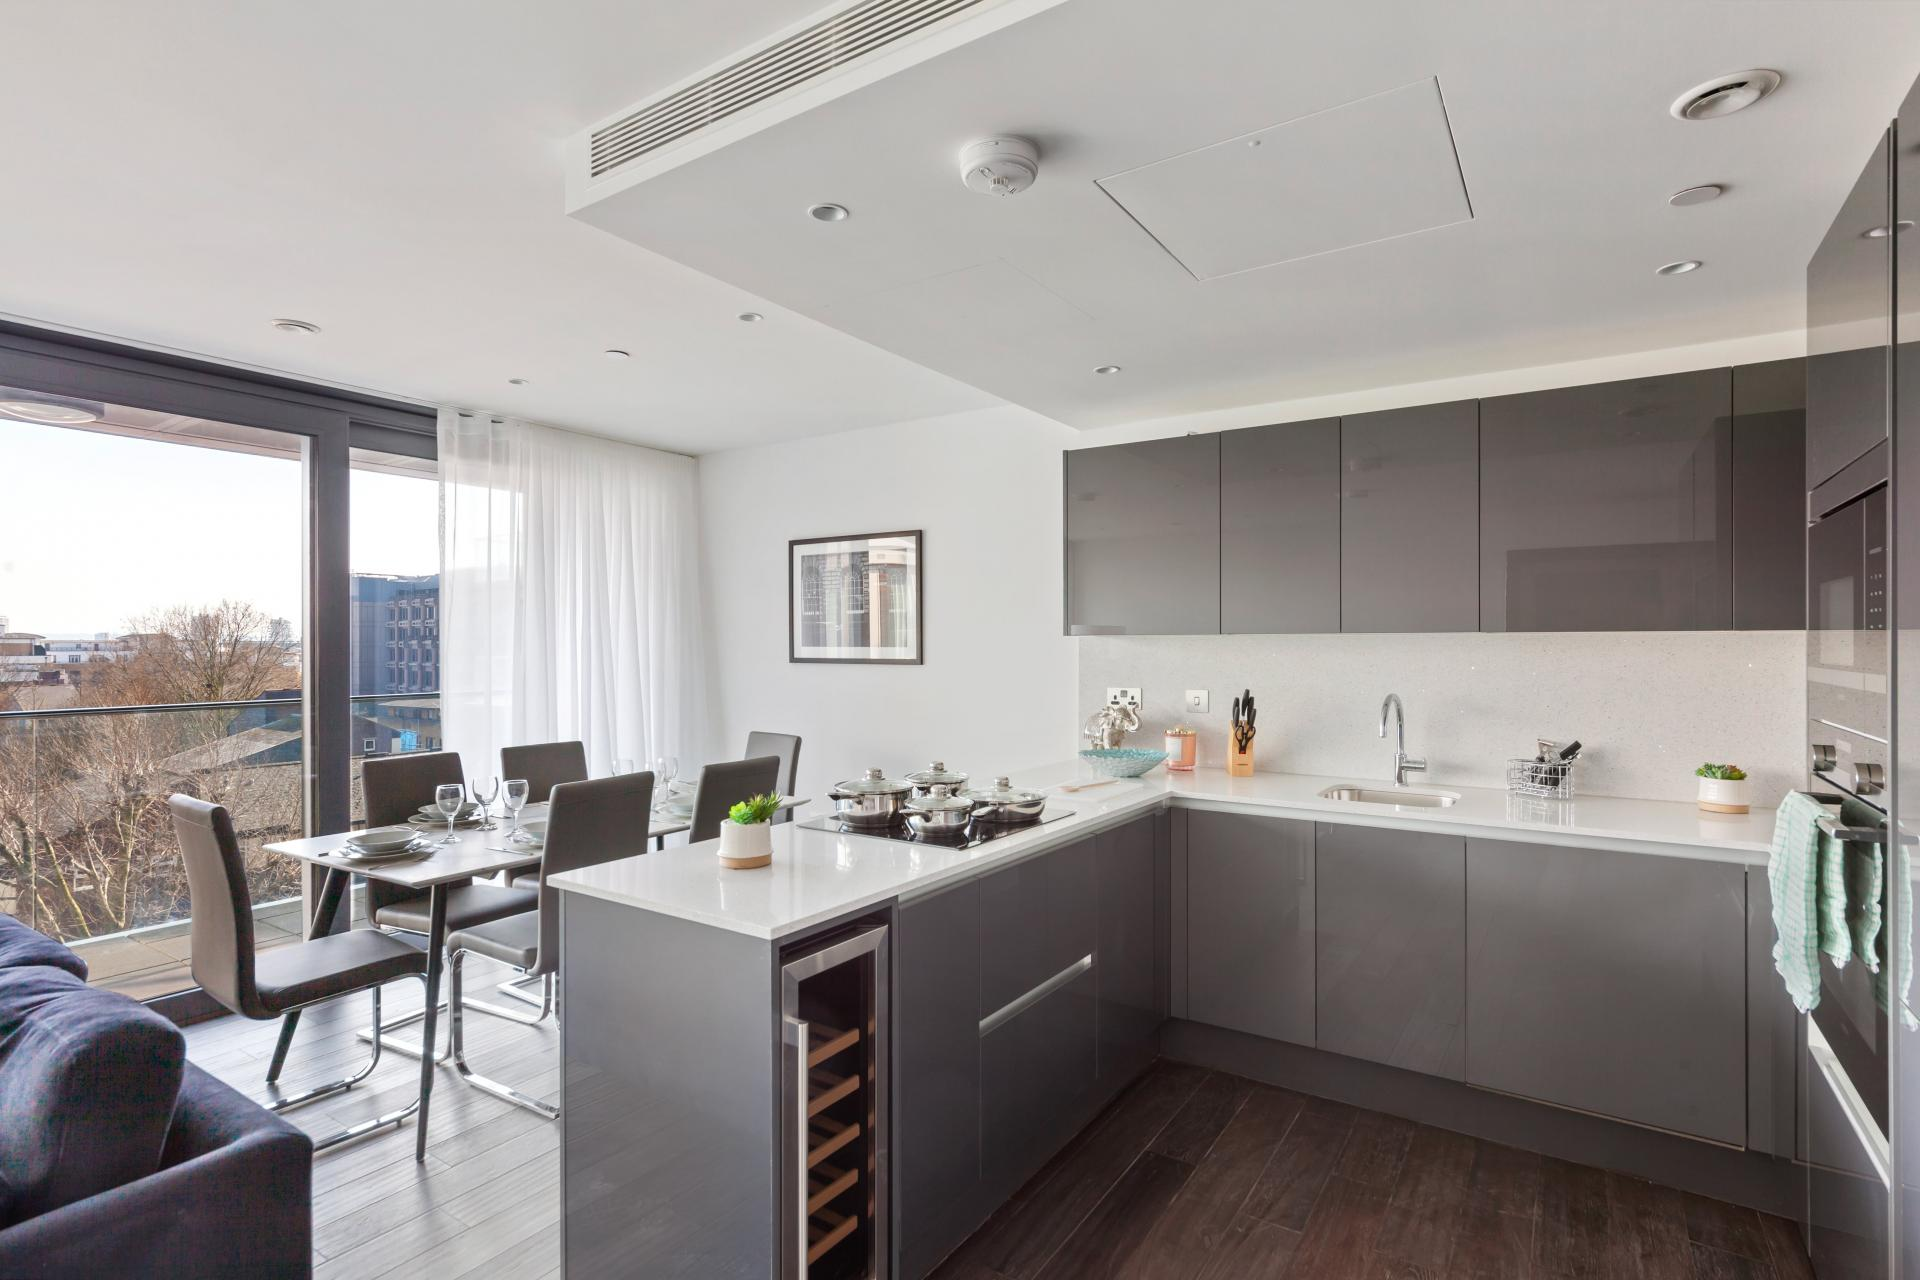 Kitchen at The Residence Tower Hill, Whitechapel, London - Citybase Apartments